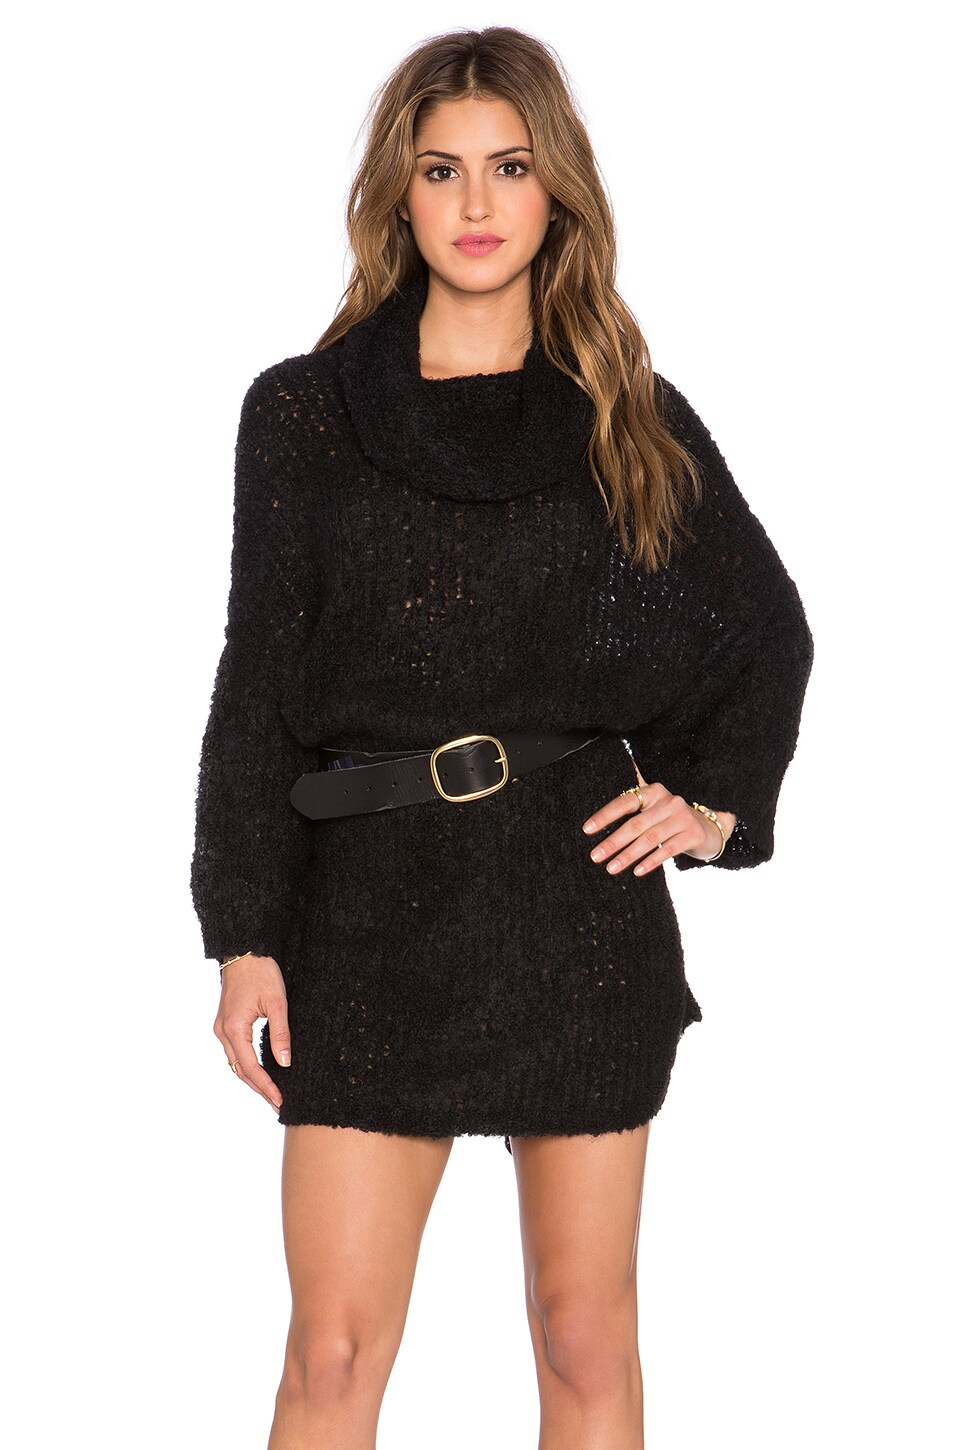 Free People Extreme Cowl Sweater in Black